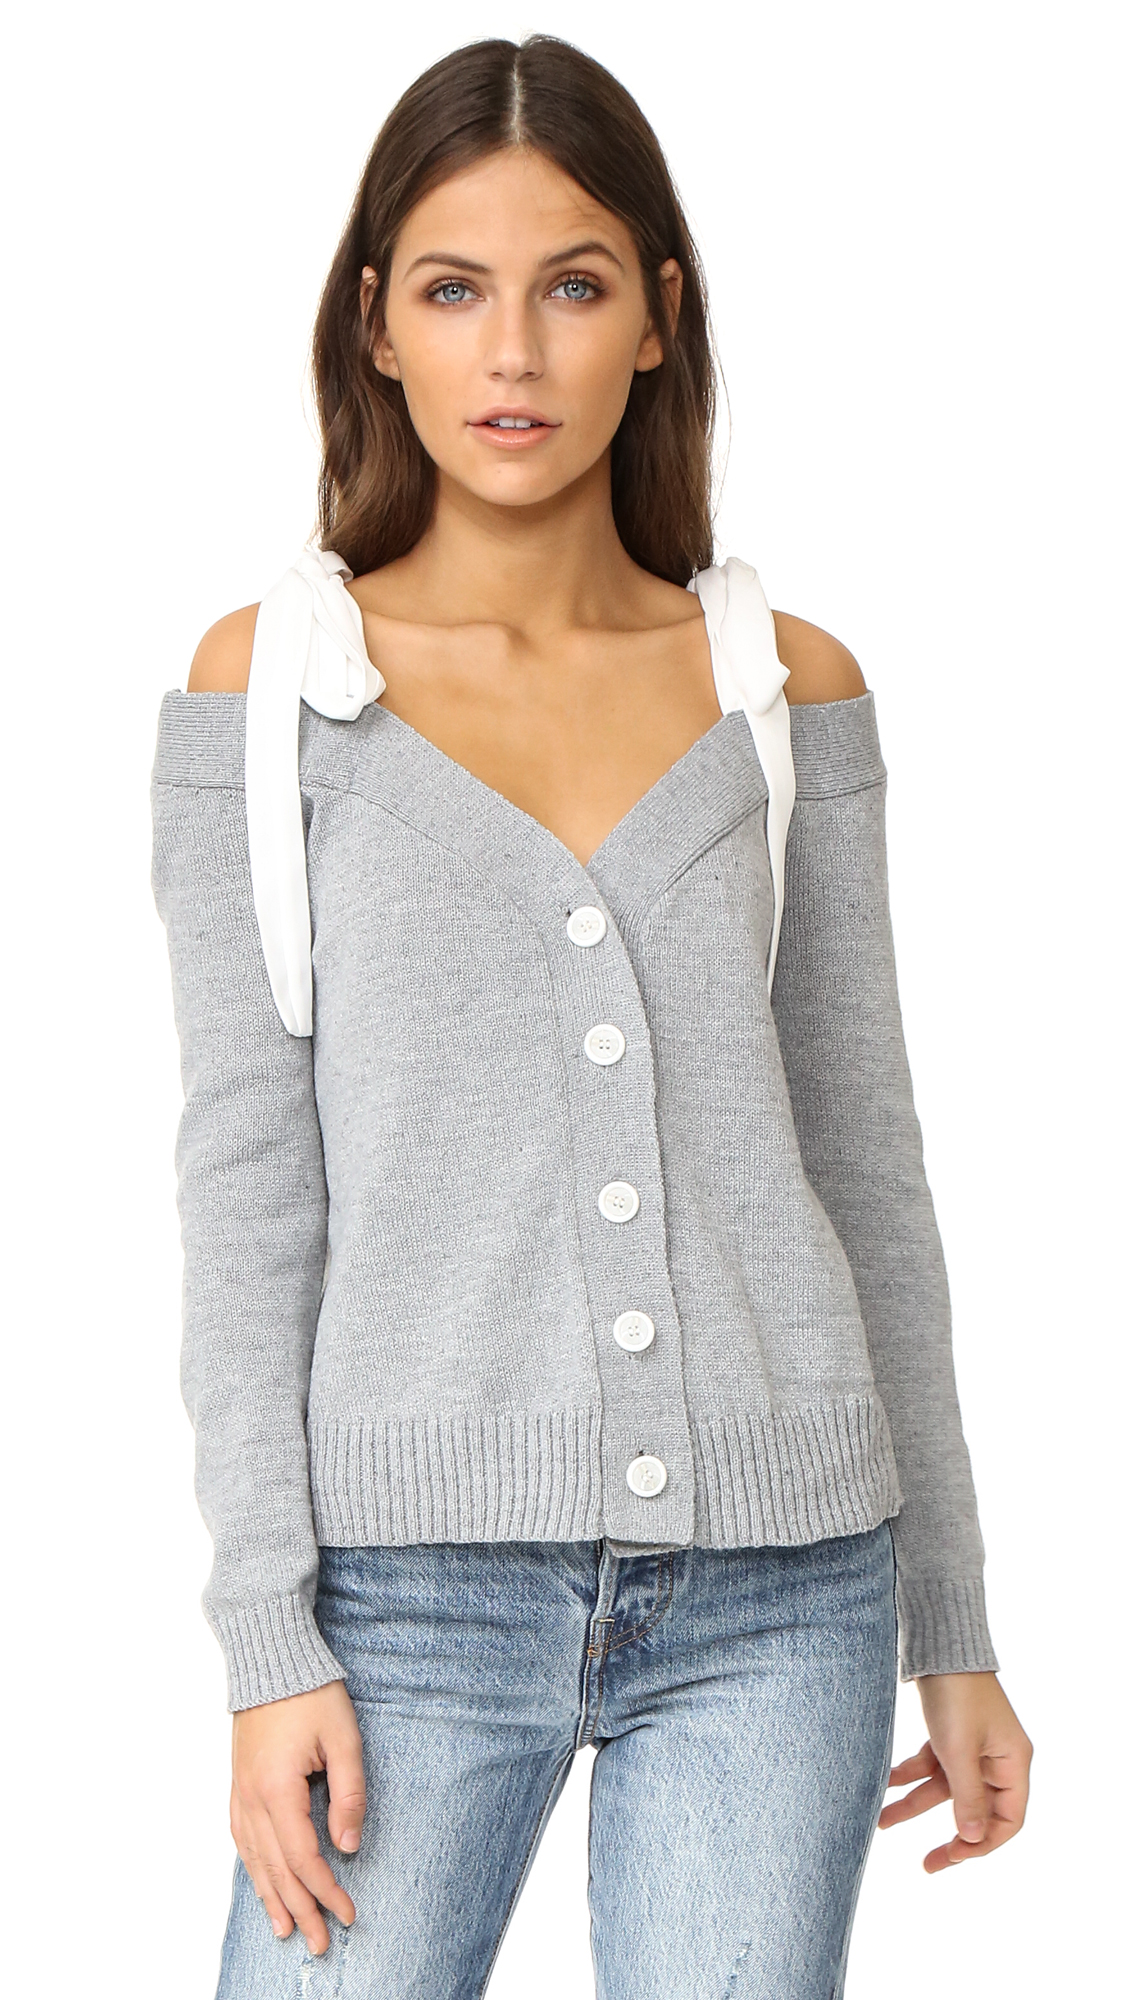 ENGLISH FACTORY Off Shoulder Knit Cardigan With Tie - Grey/Off White